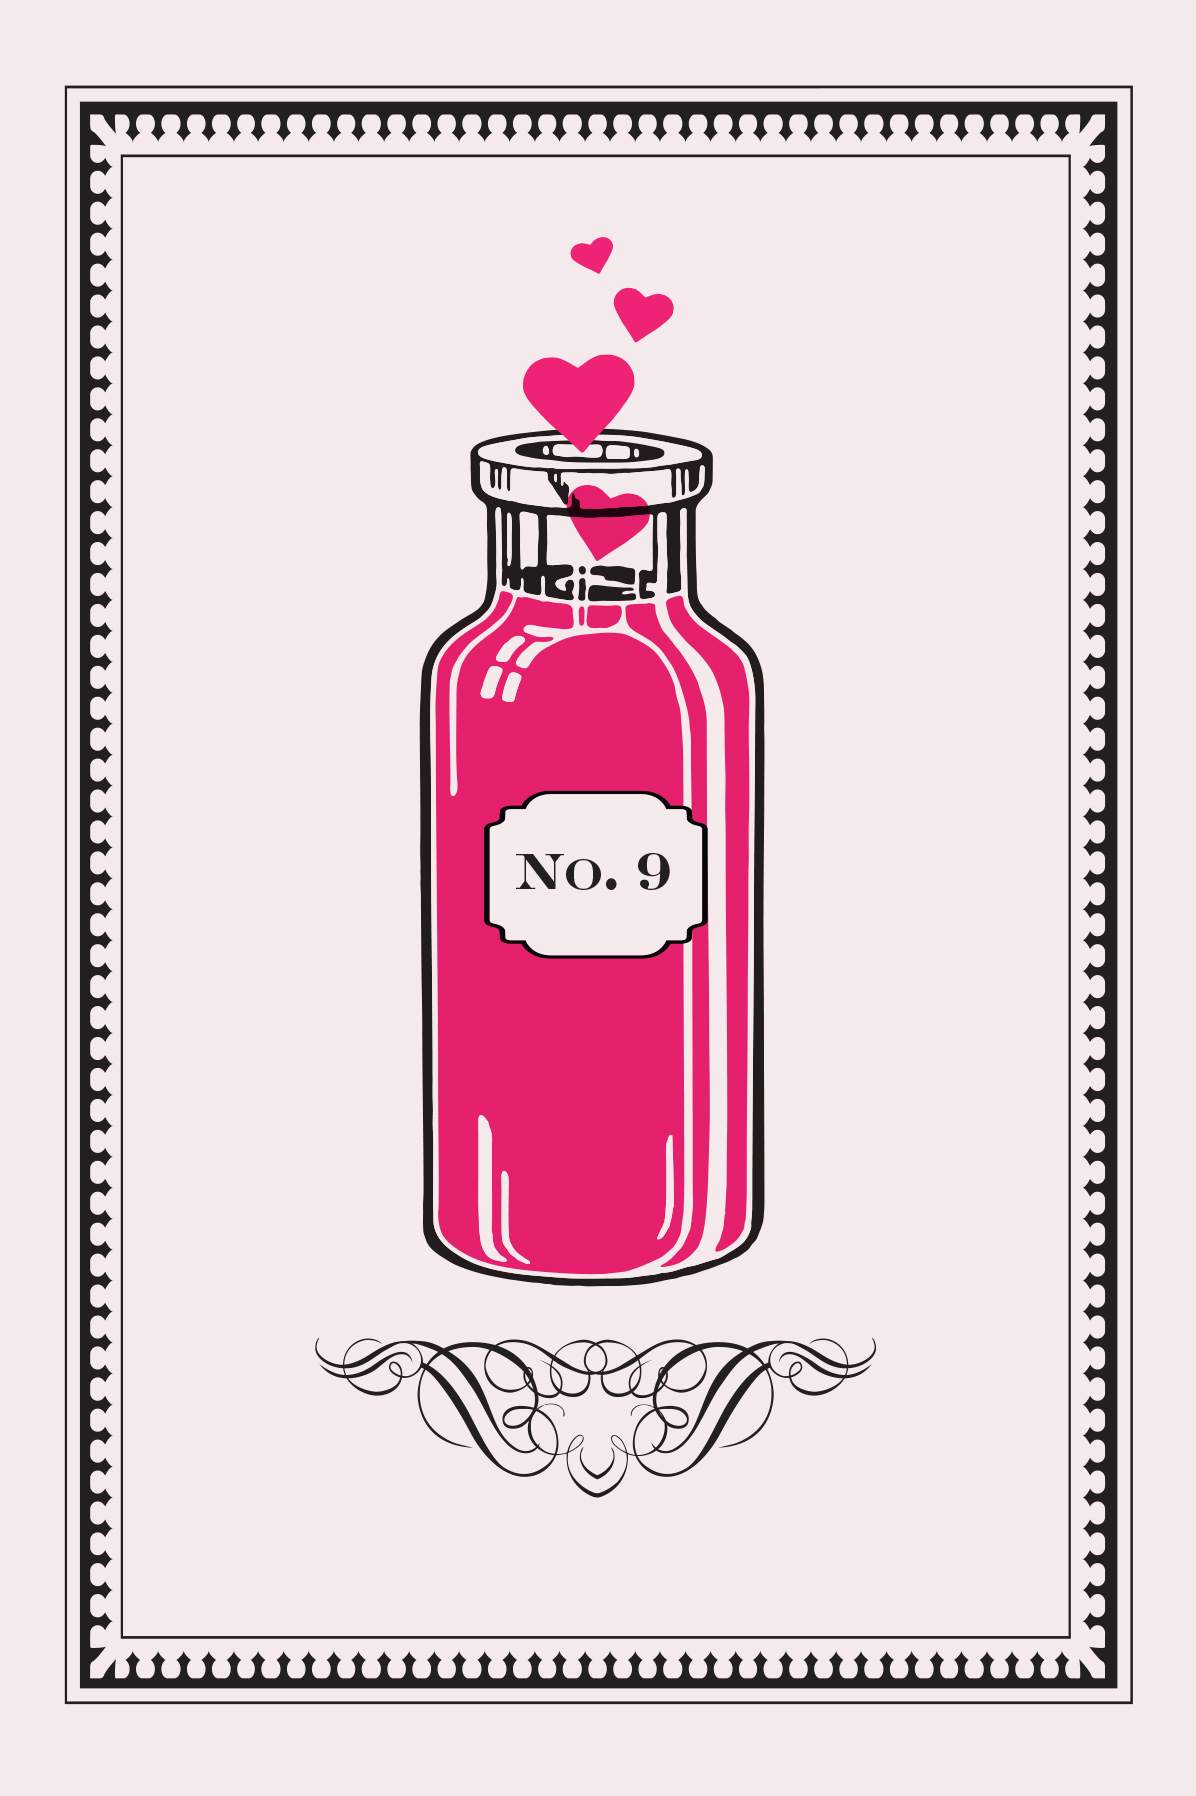 Love_potion_Remco8_PinkPpr-1.jpg